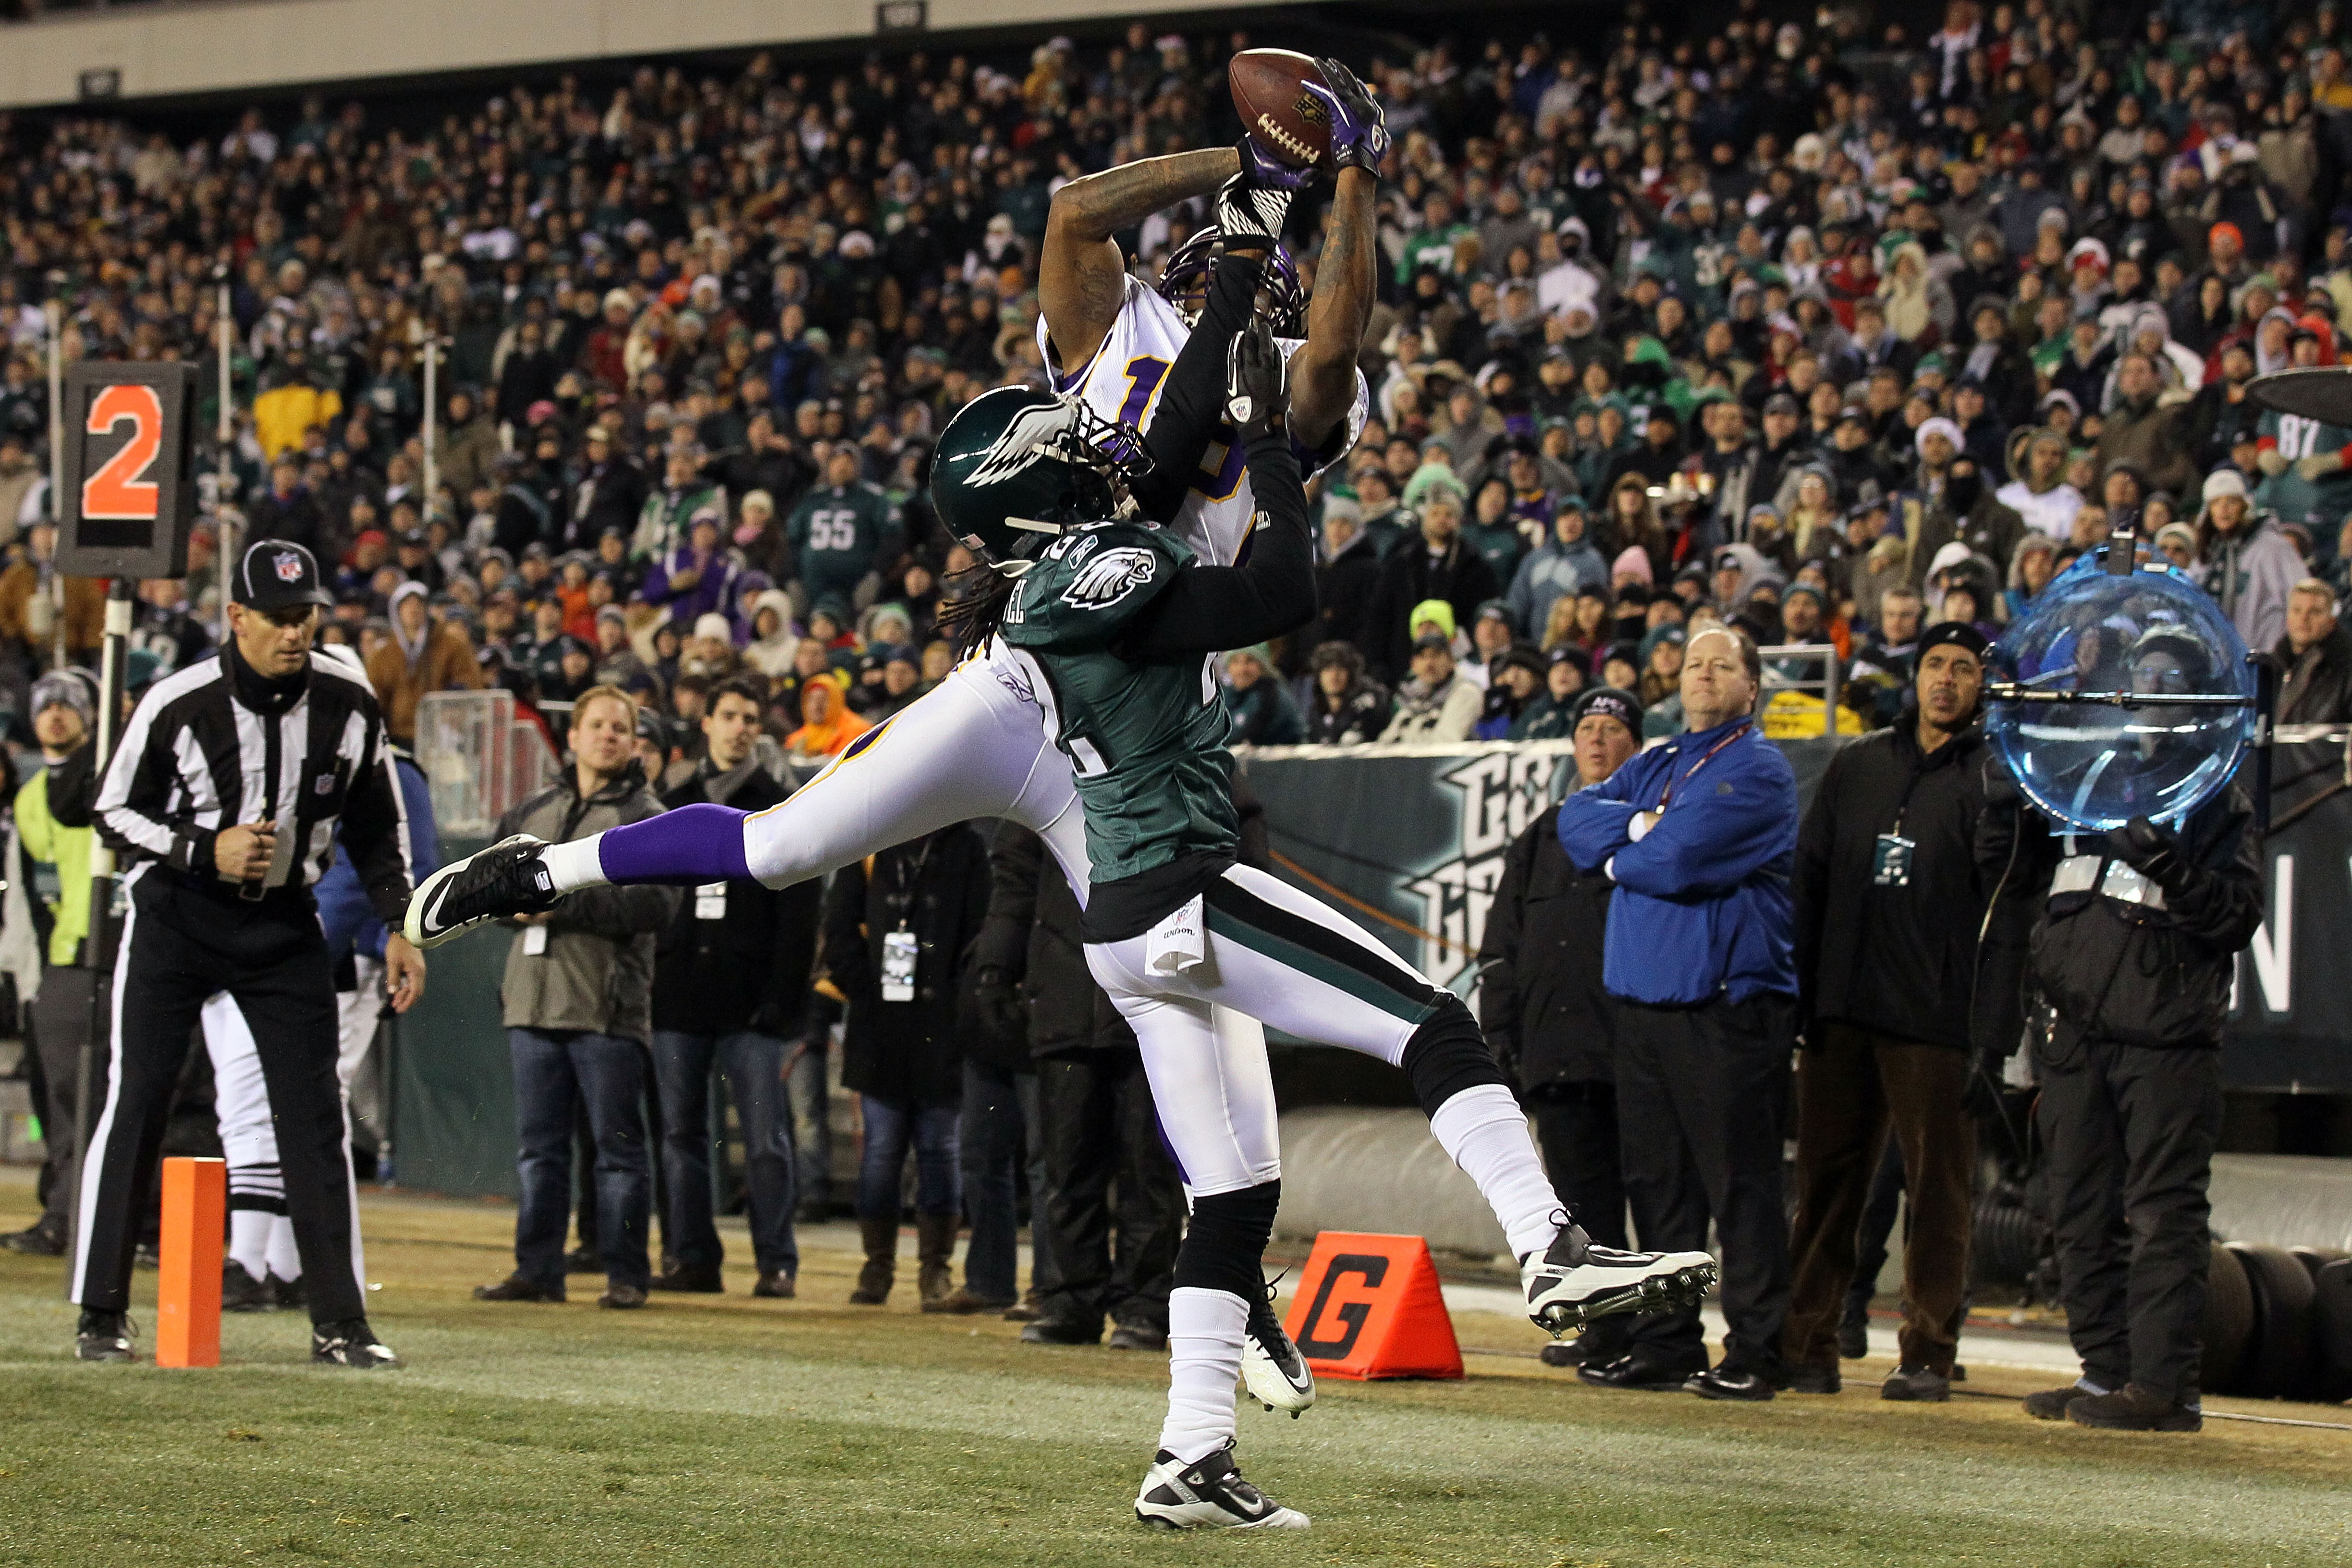 PHILADELPHIA, PA - DECEMBER 28:  Sidney Rice #18 of the Minnesota Vikings in action against Asante Samuel #22 of the Philadelphia Eagles at Lincoln Financial Field on December 28, 2010 in Philadelphia, Pennsylvania.  (Photo by Jim McIsaac/Getty Images)